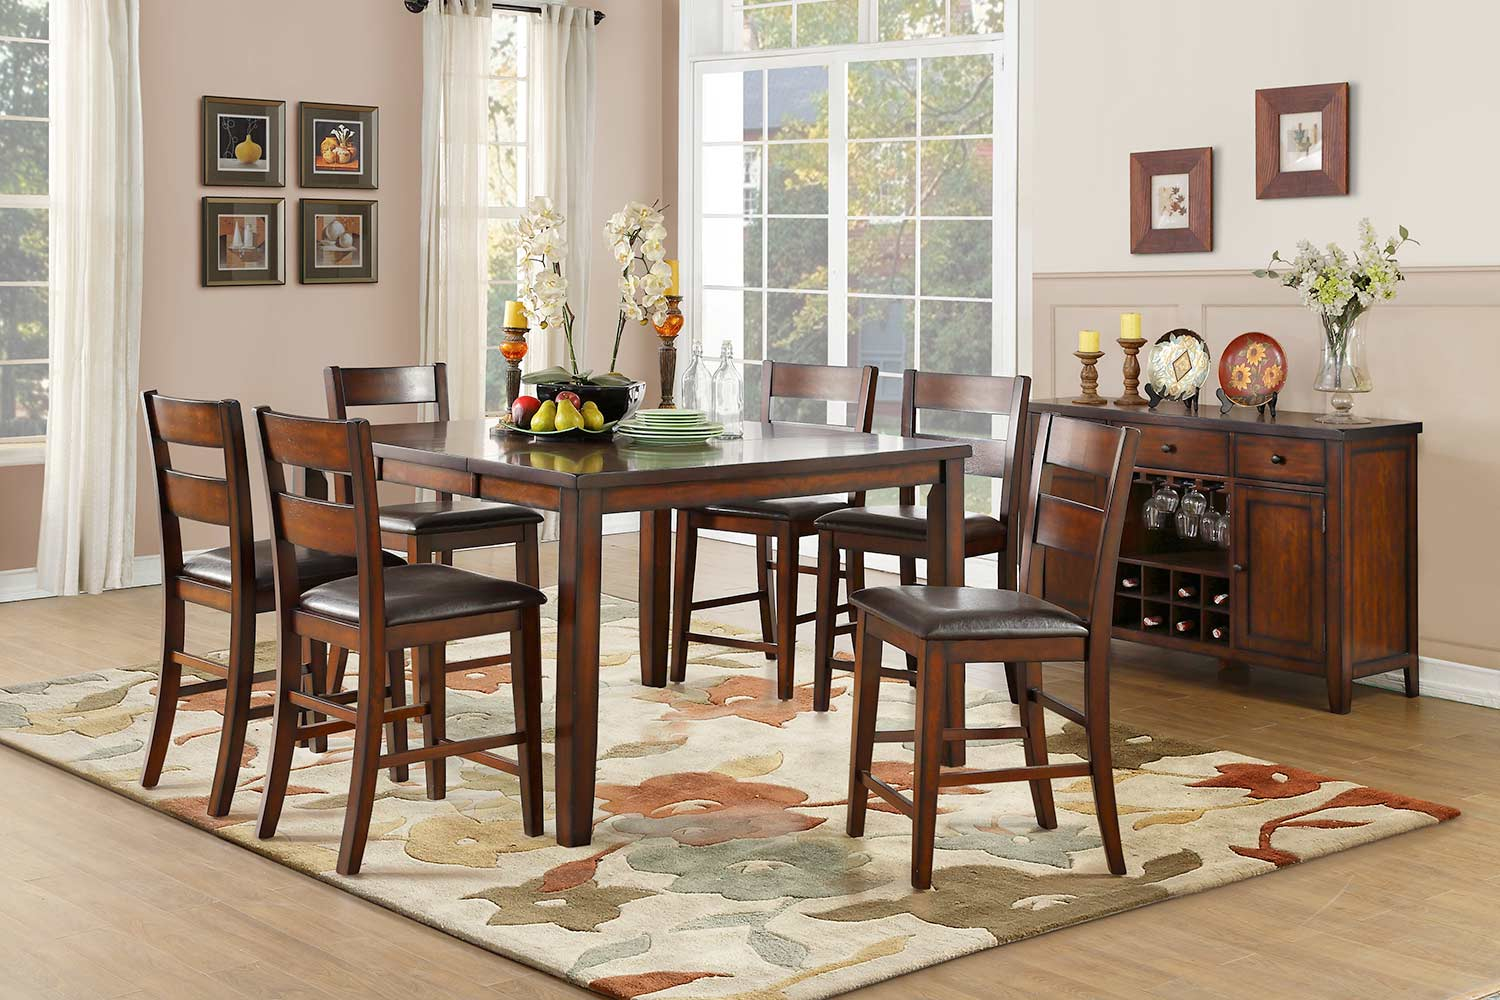 Homelegance Mantello Counter Height Dining Set - Cherry